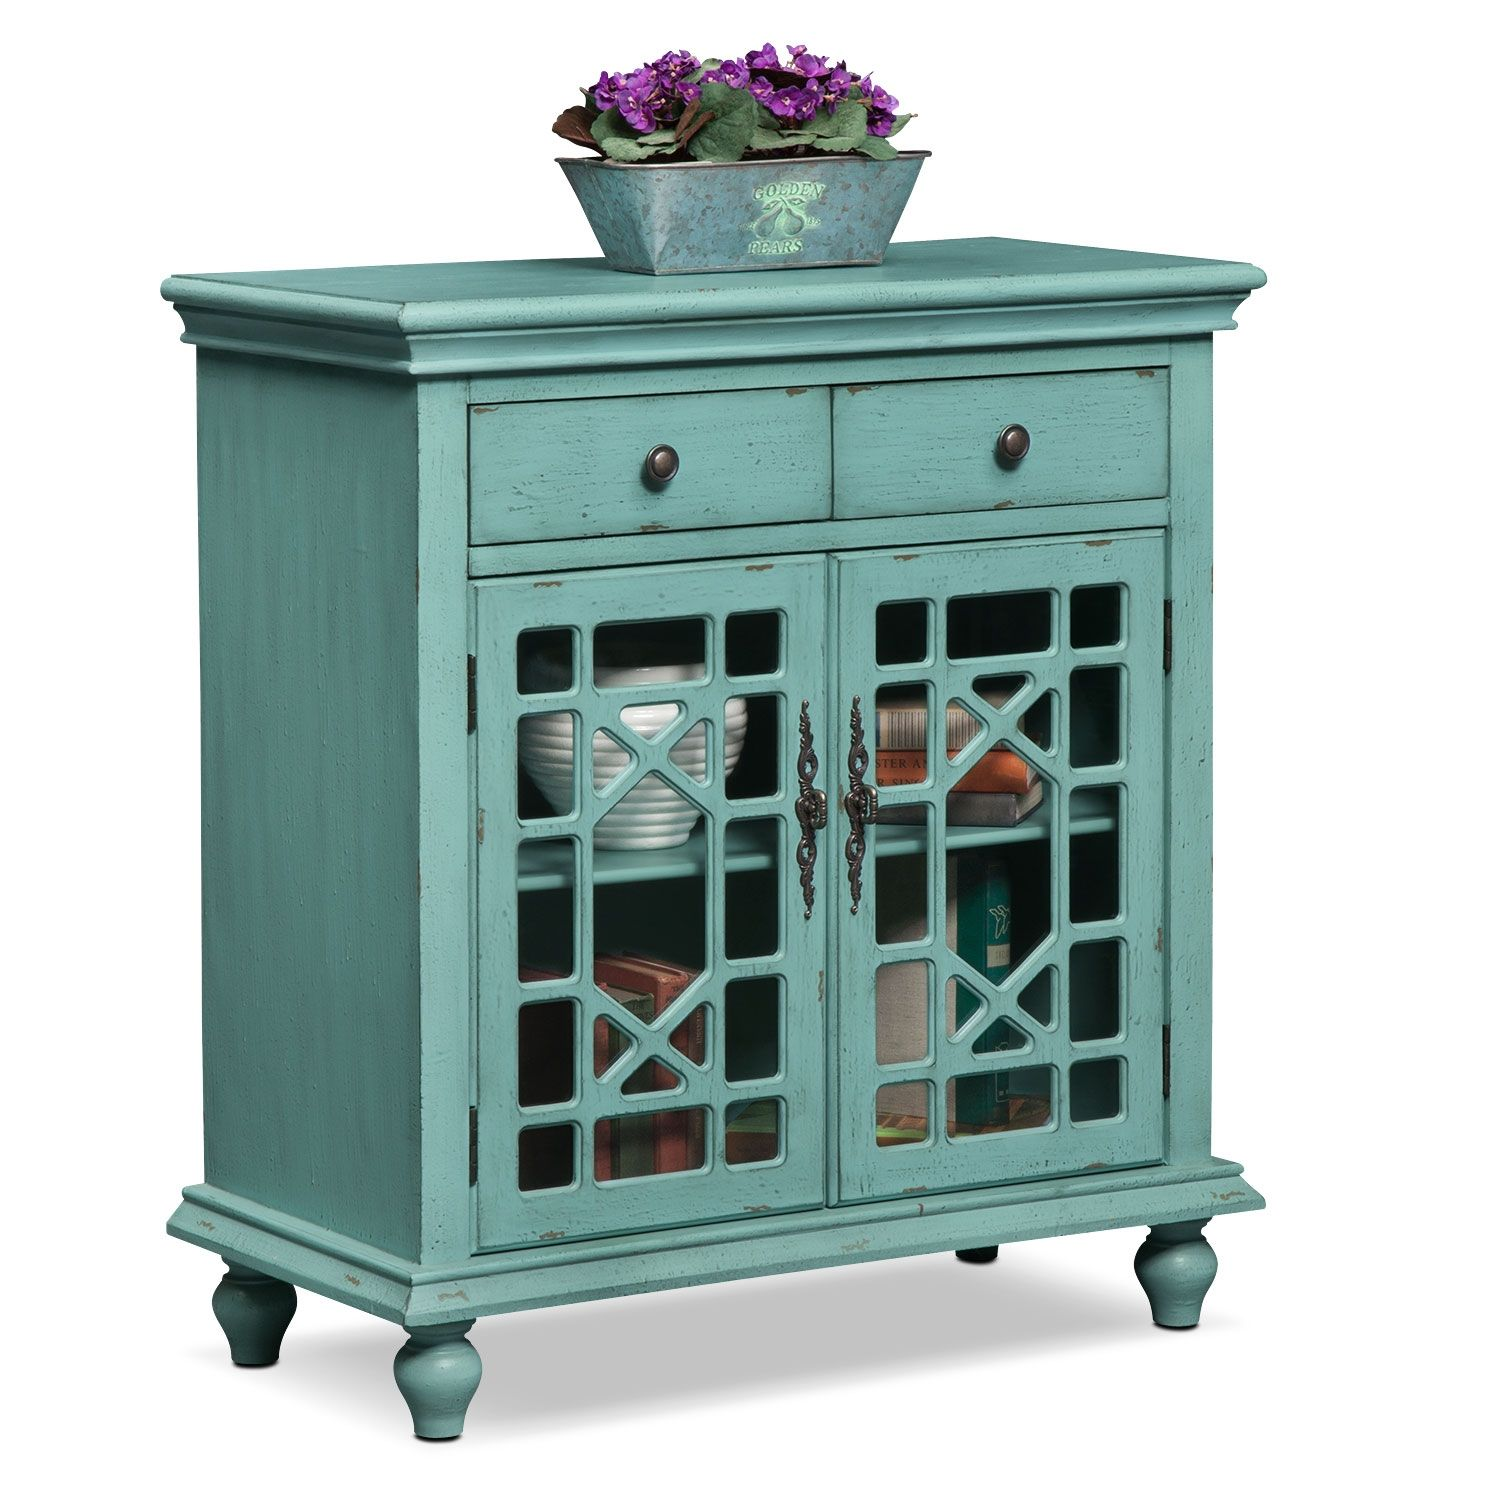 Grenoble Accent Cabinet - Teal | Door pulls, Metal accents and Moldings